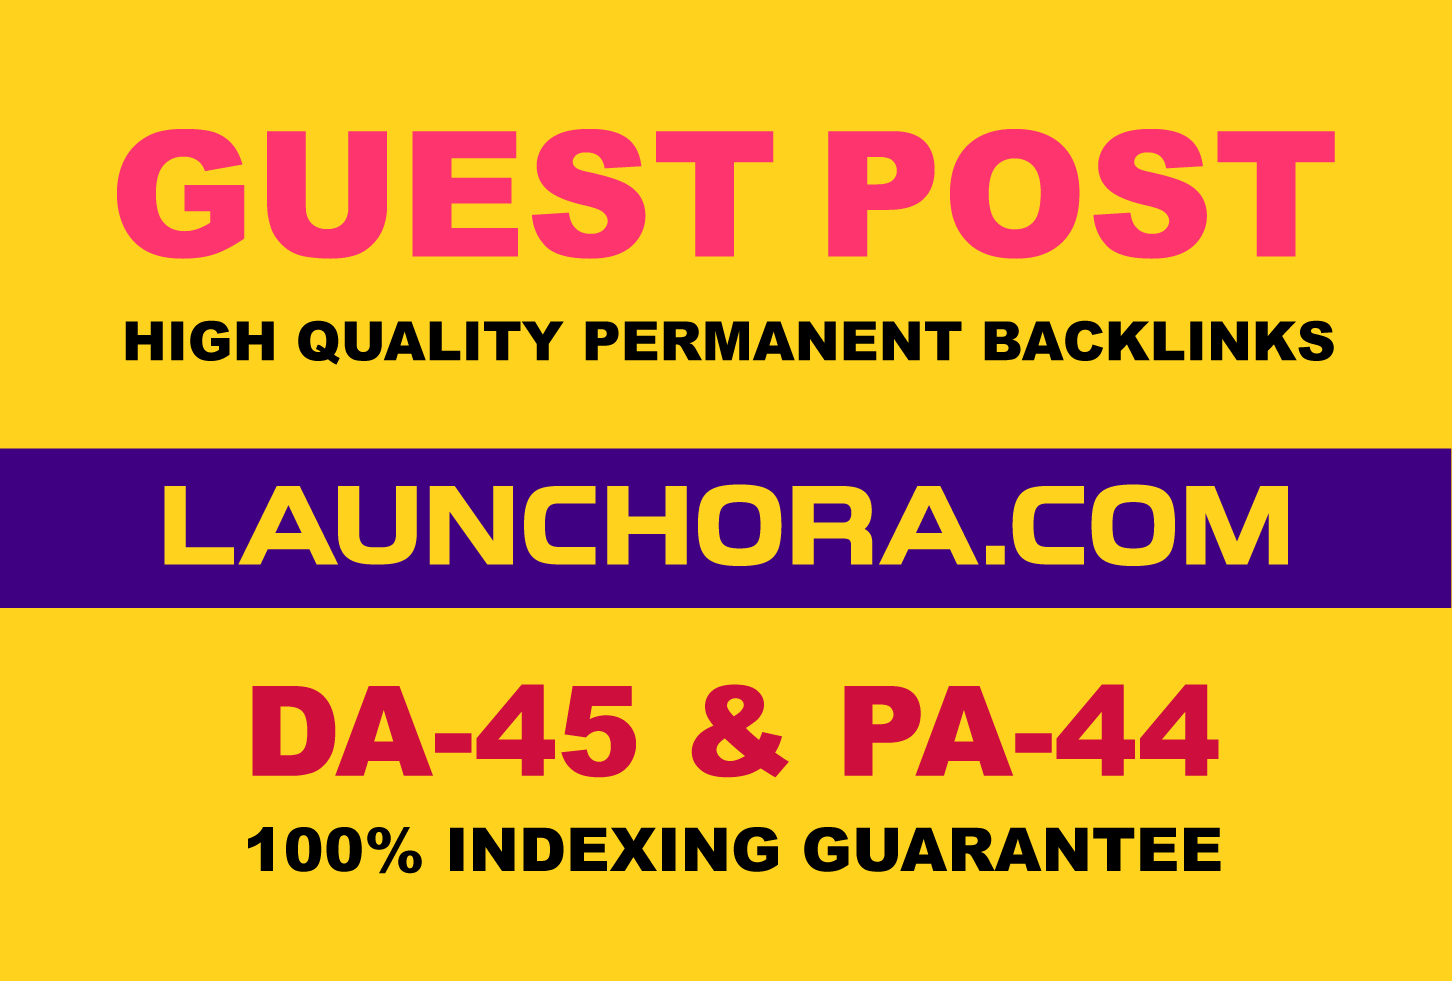 Publish A Guest Blog Post On launchora. com DA-45 With 100 Indexing guarantee